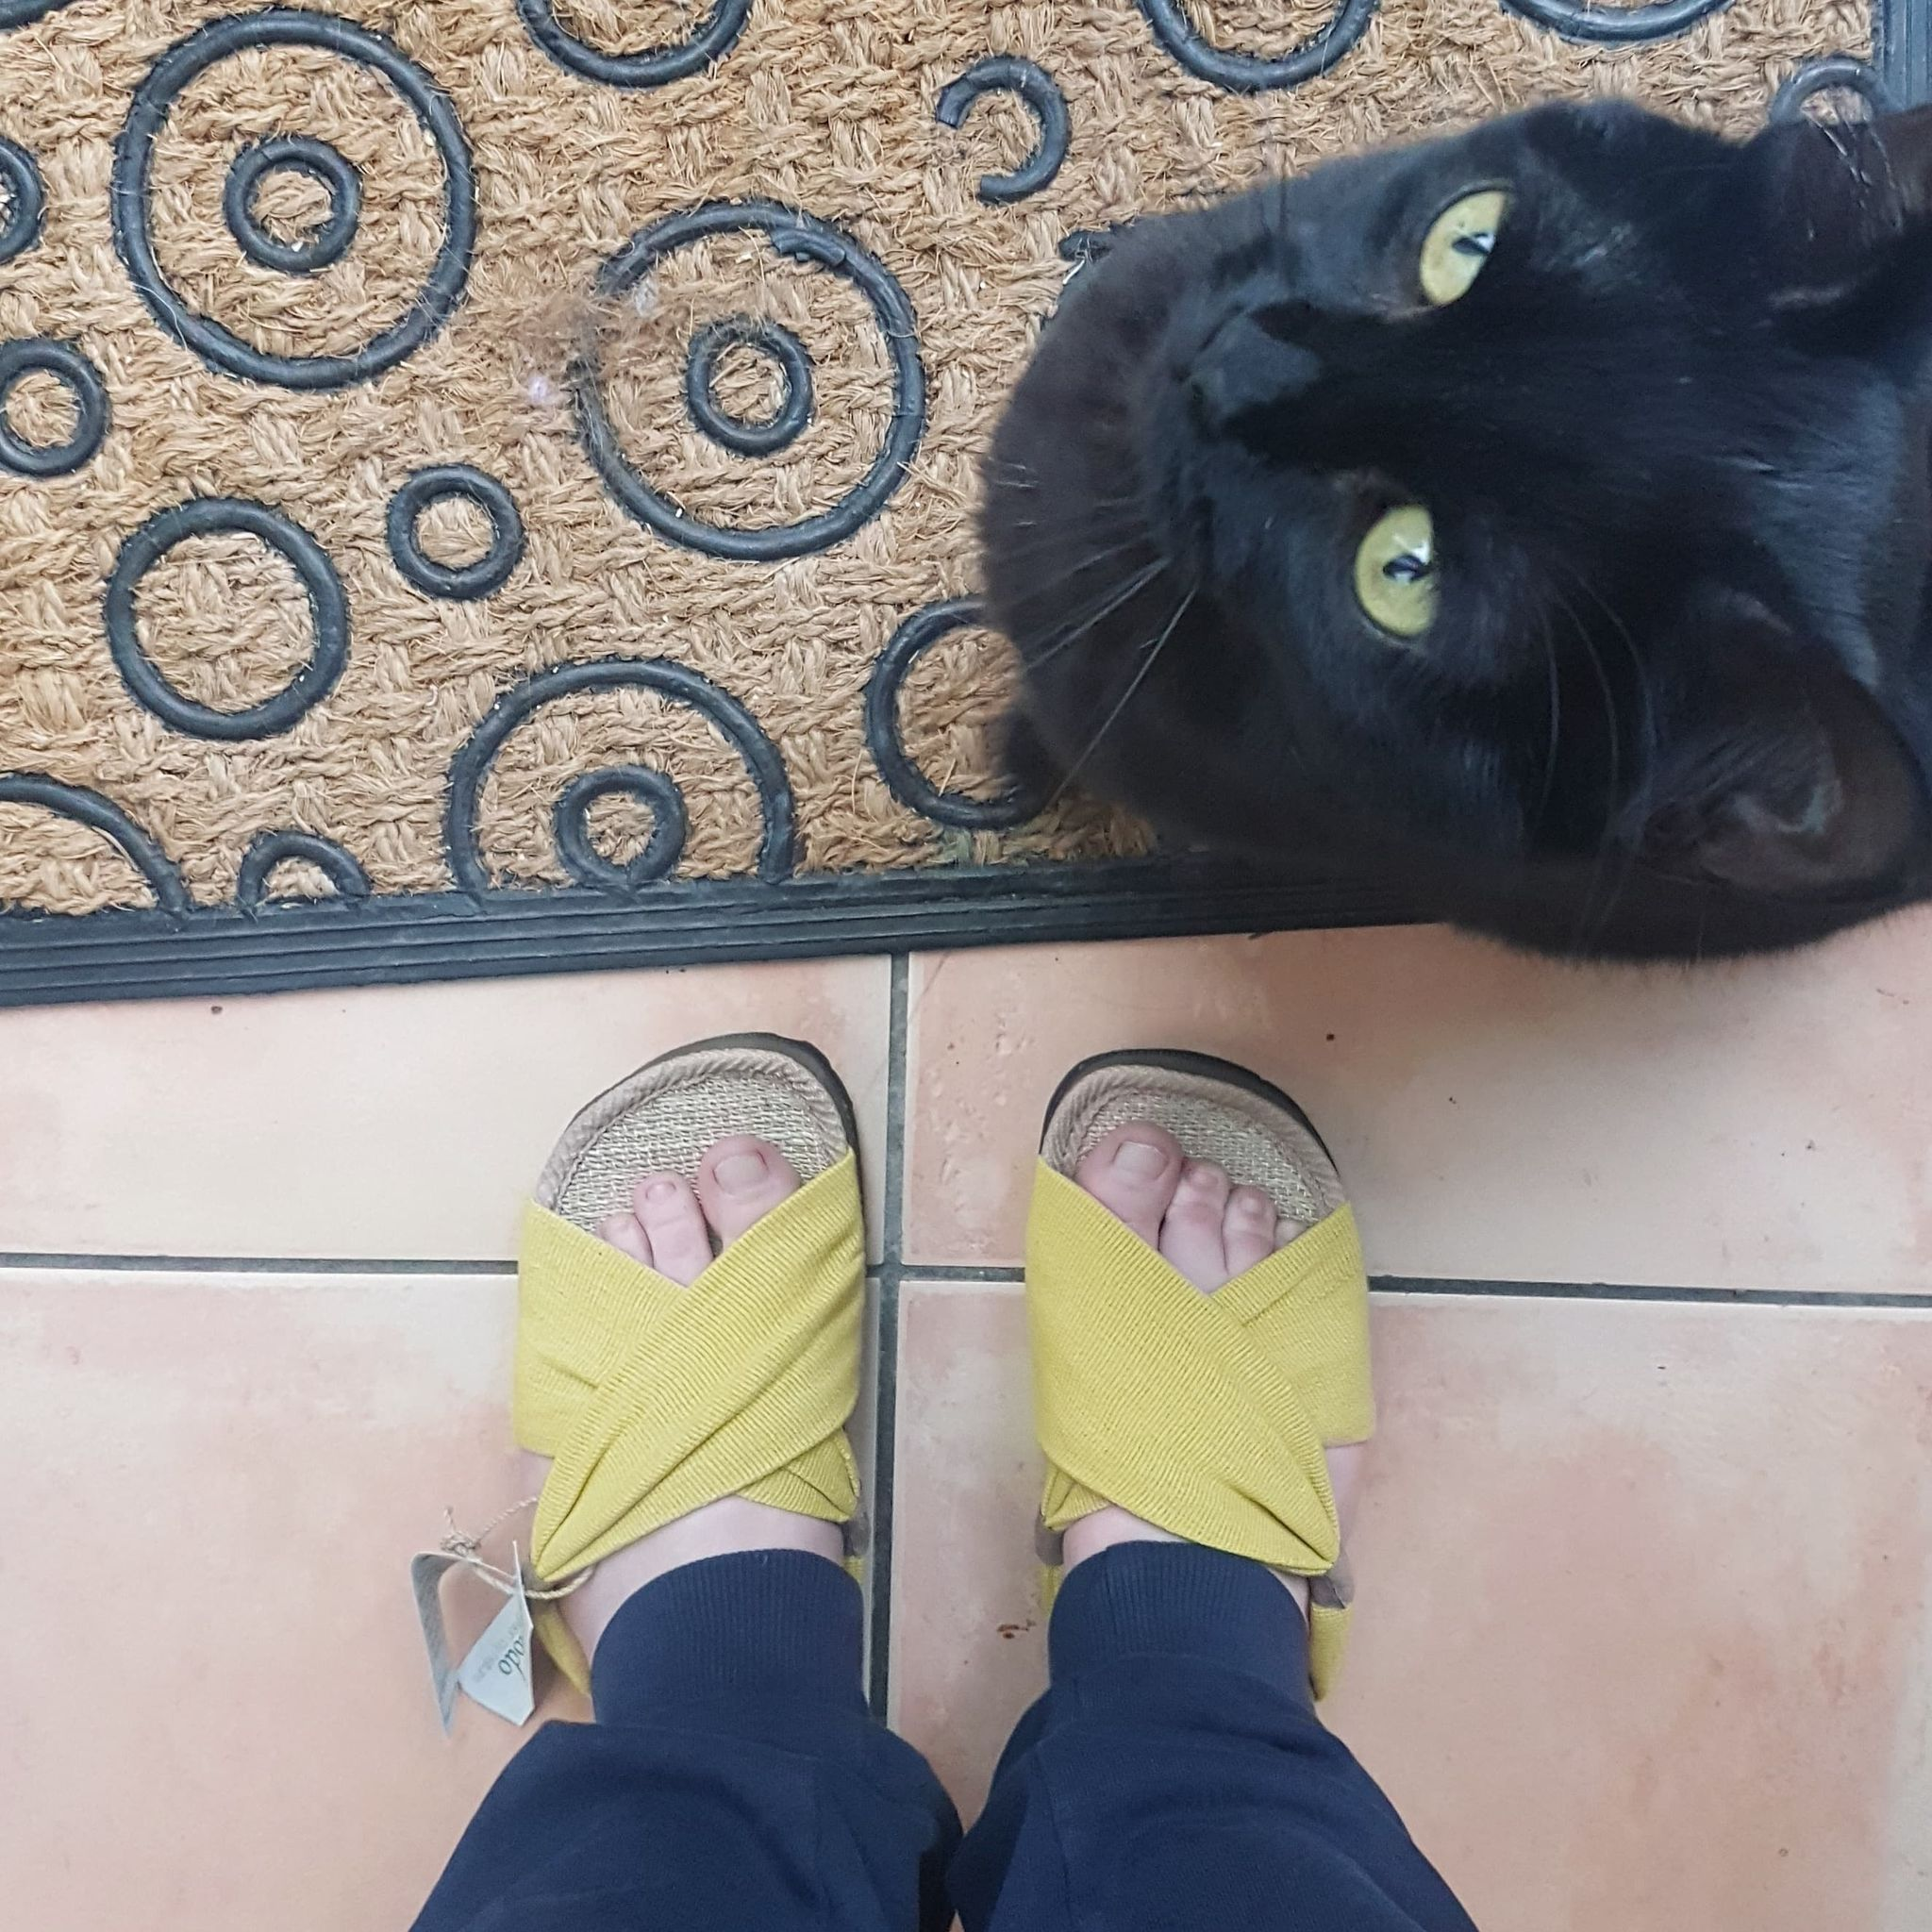 yellow and brown sustainable ethical sandals from Komodo standing next to a black cat looking up